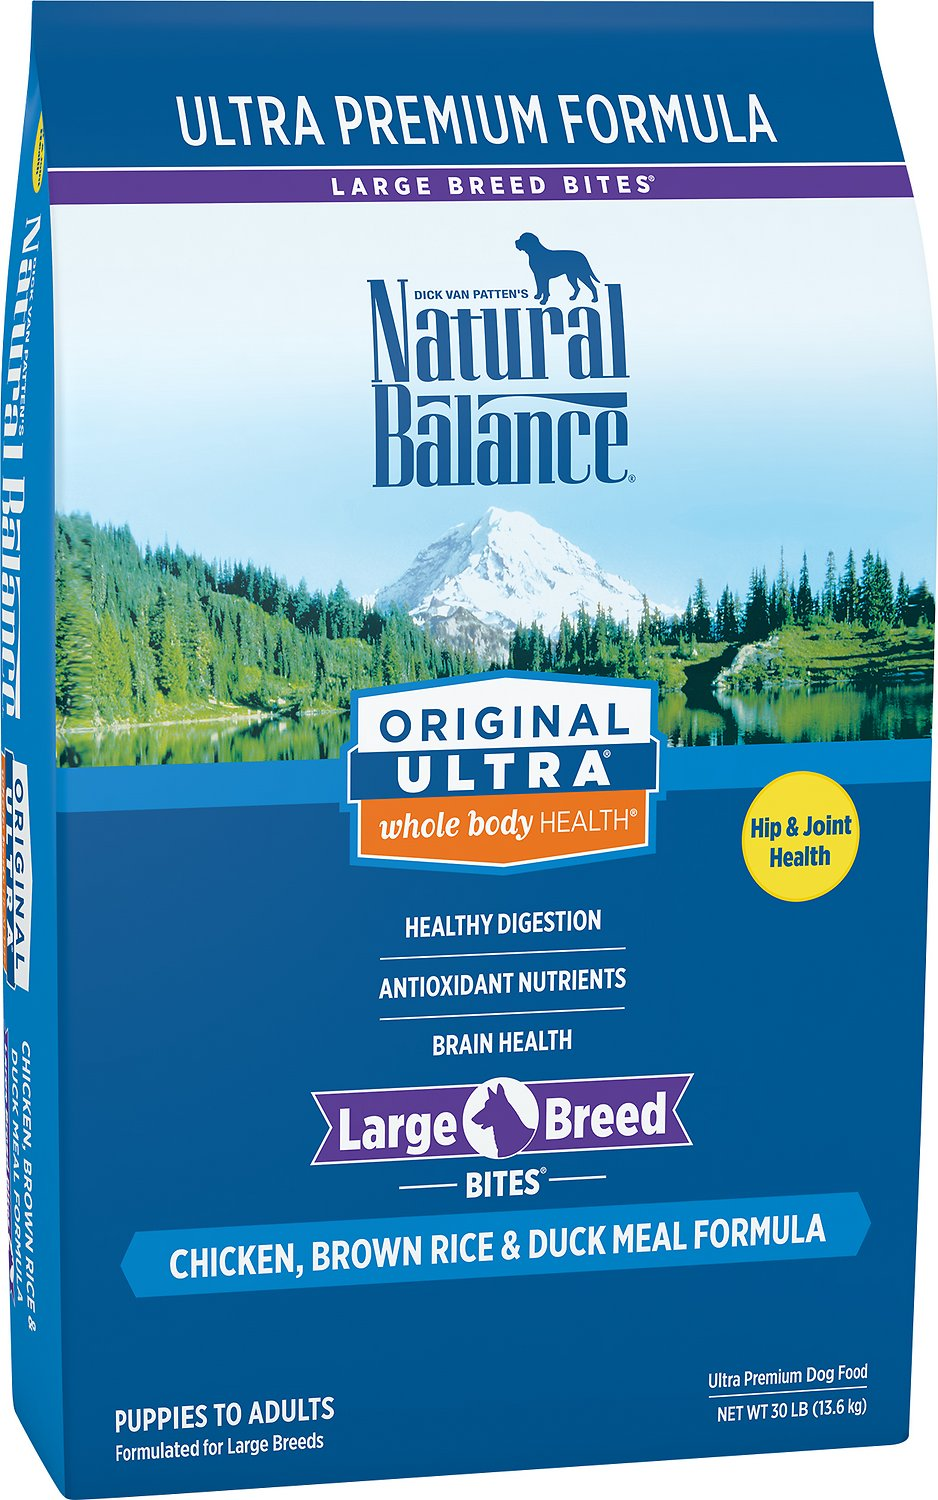 Natural Balance Original Ultra Dog Food